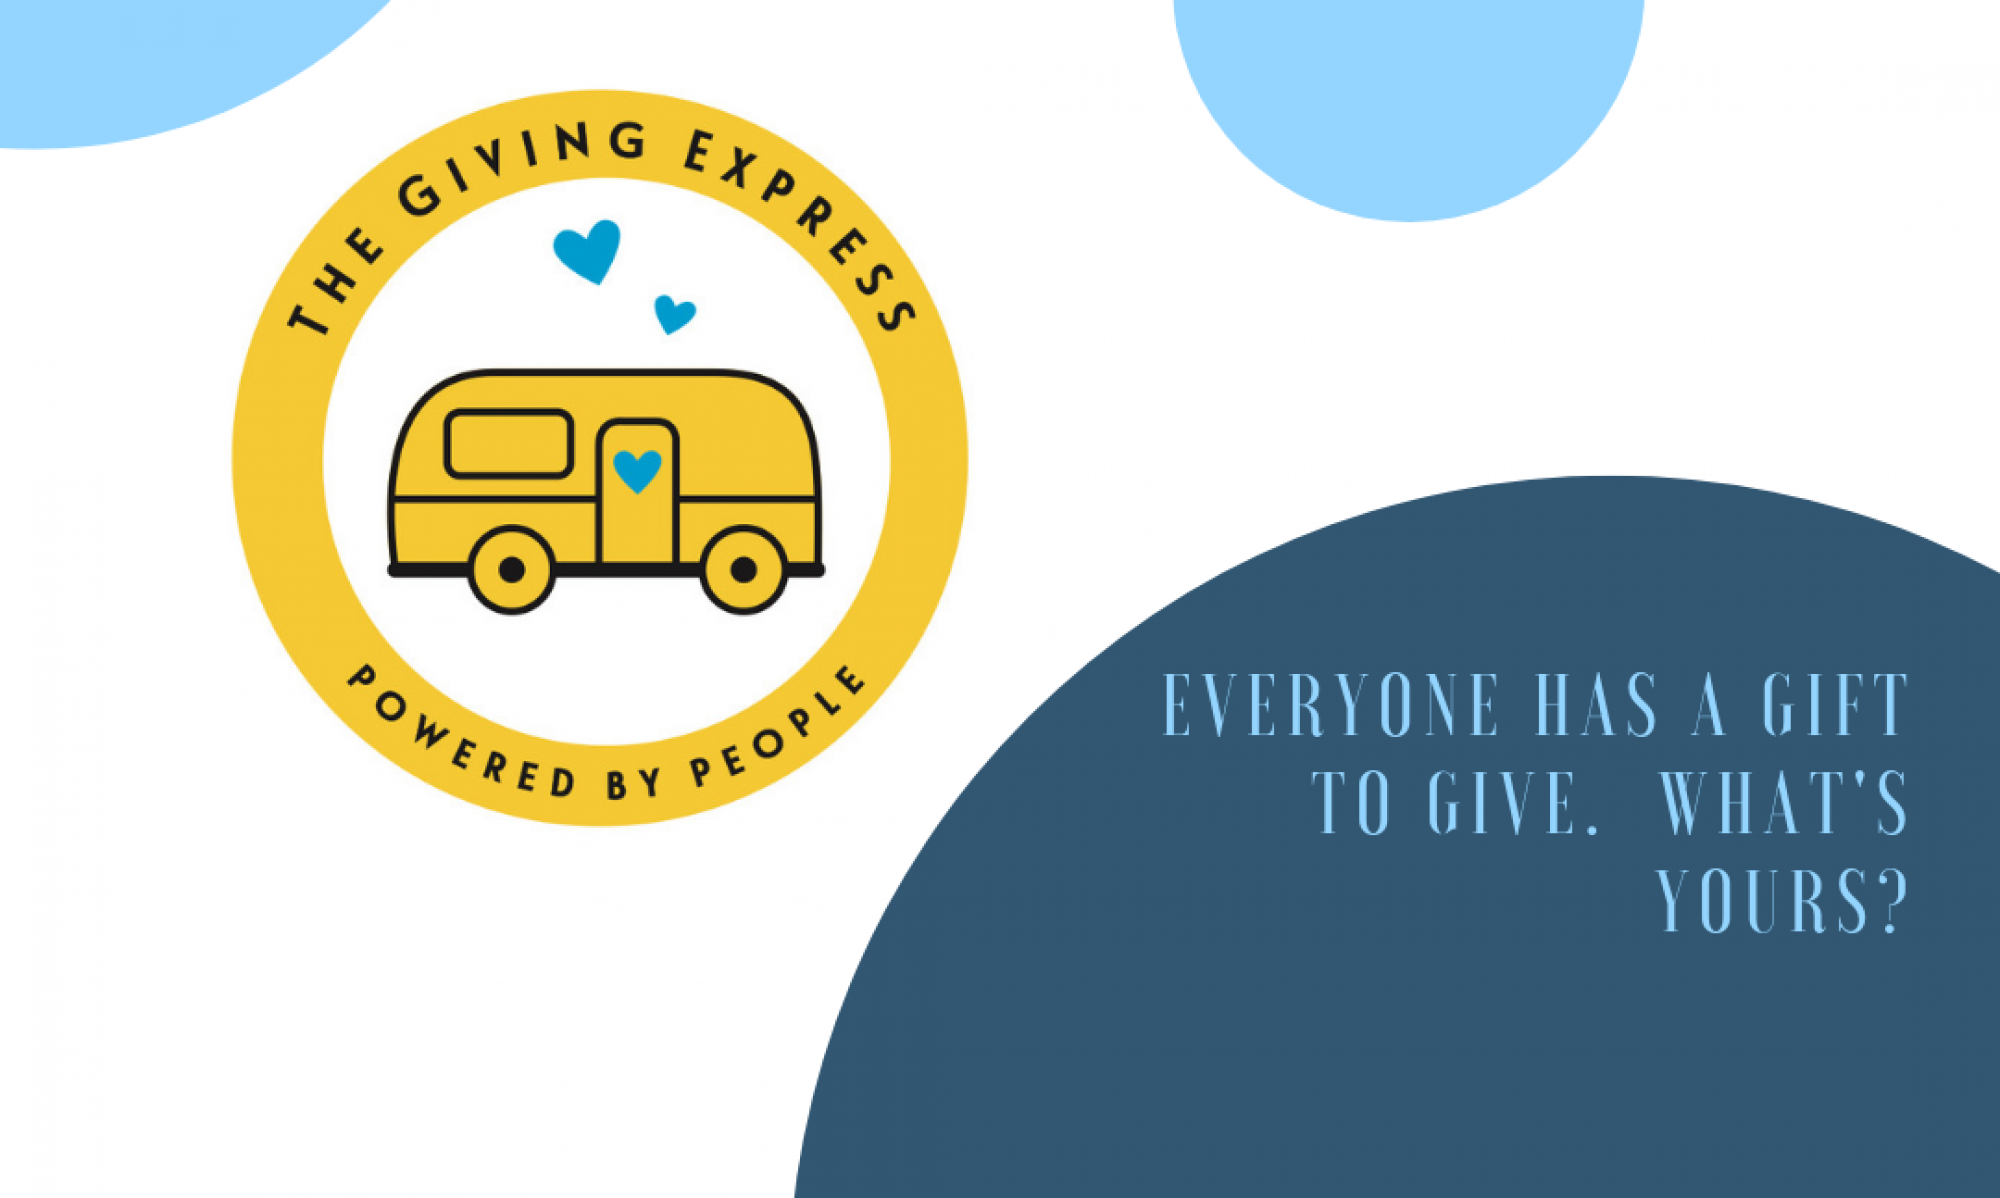 The Giving Express